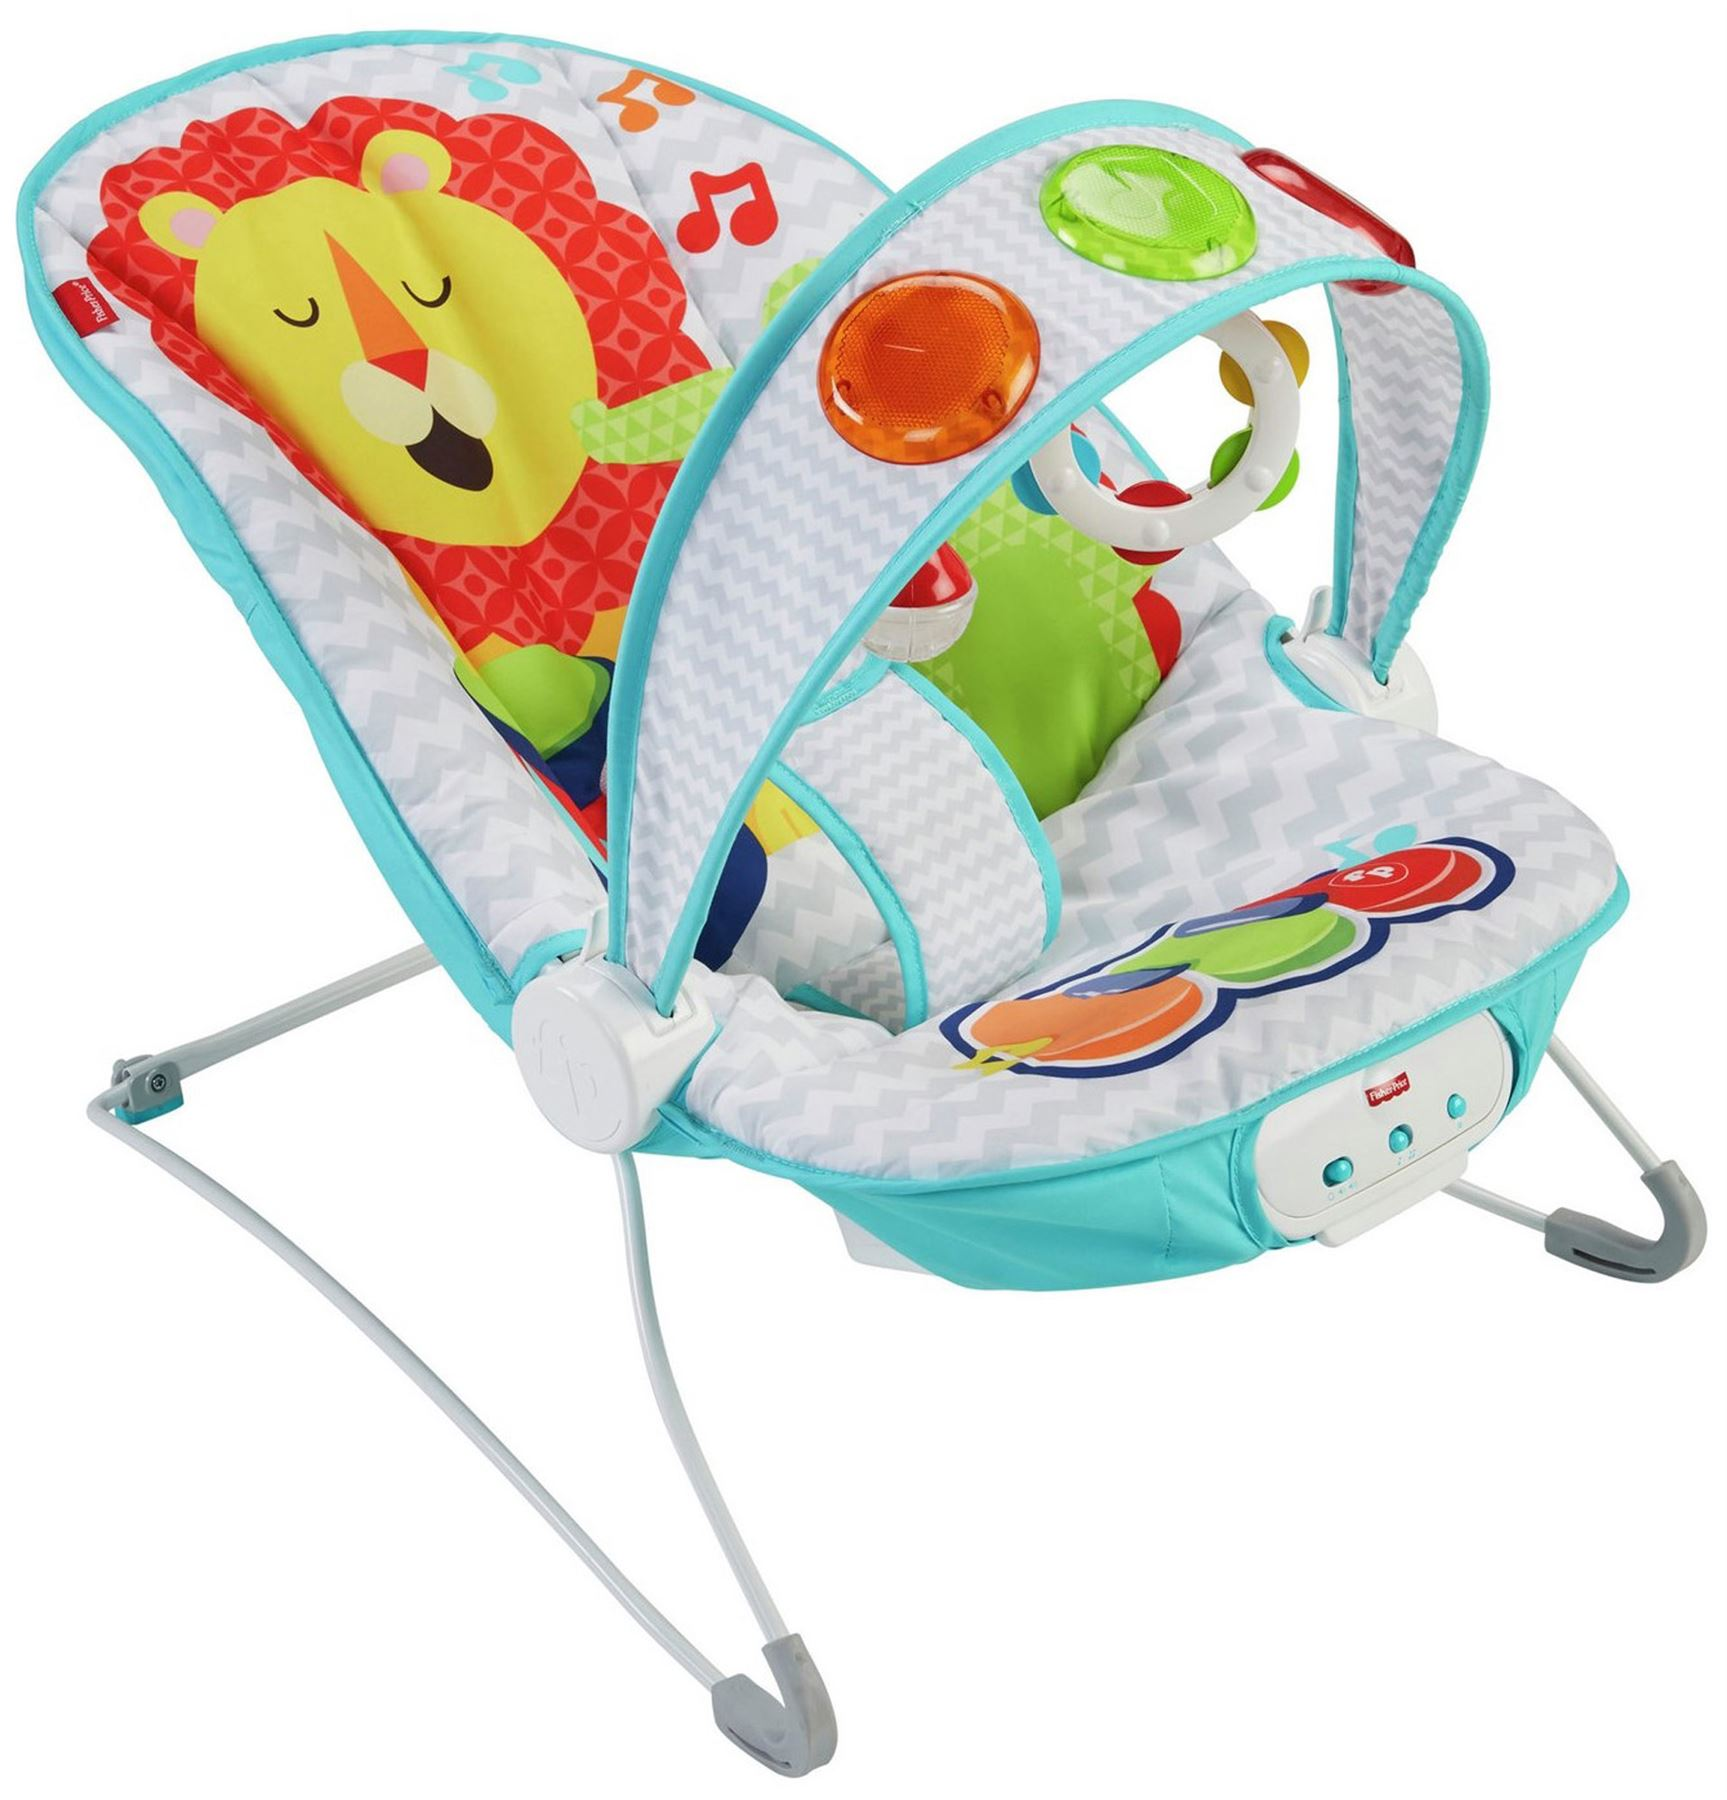 Fisher Price Baby Chair Details About Fisher Price Fisher Price Kick Play Bouncer Baby Rocker Bouncer